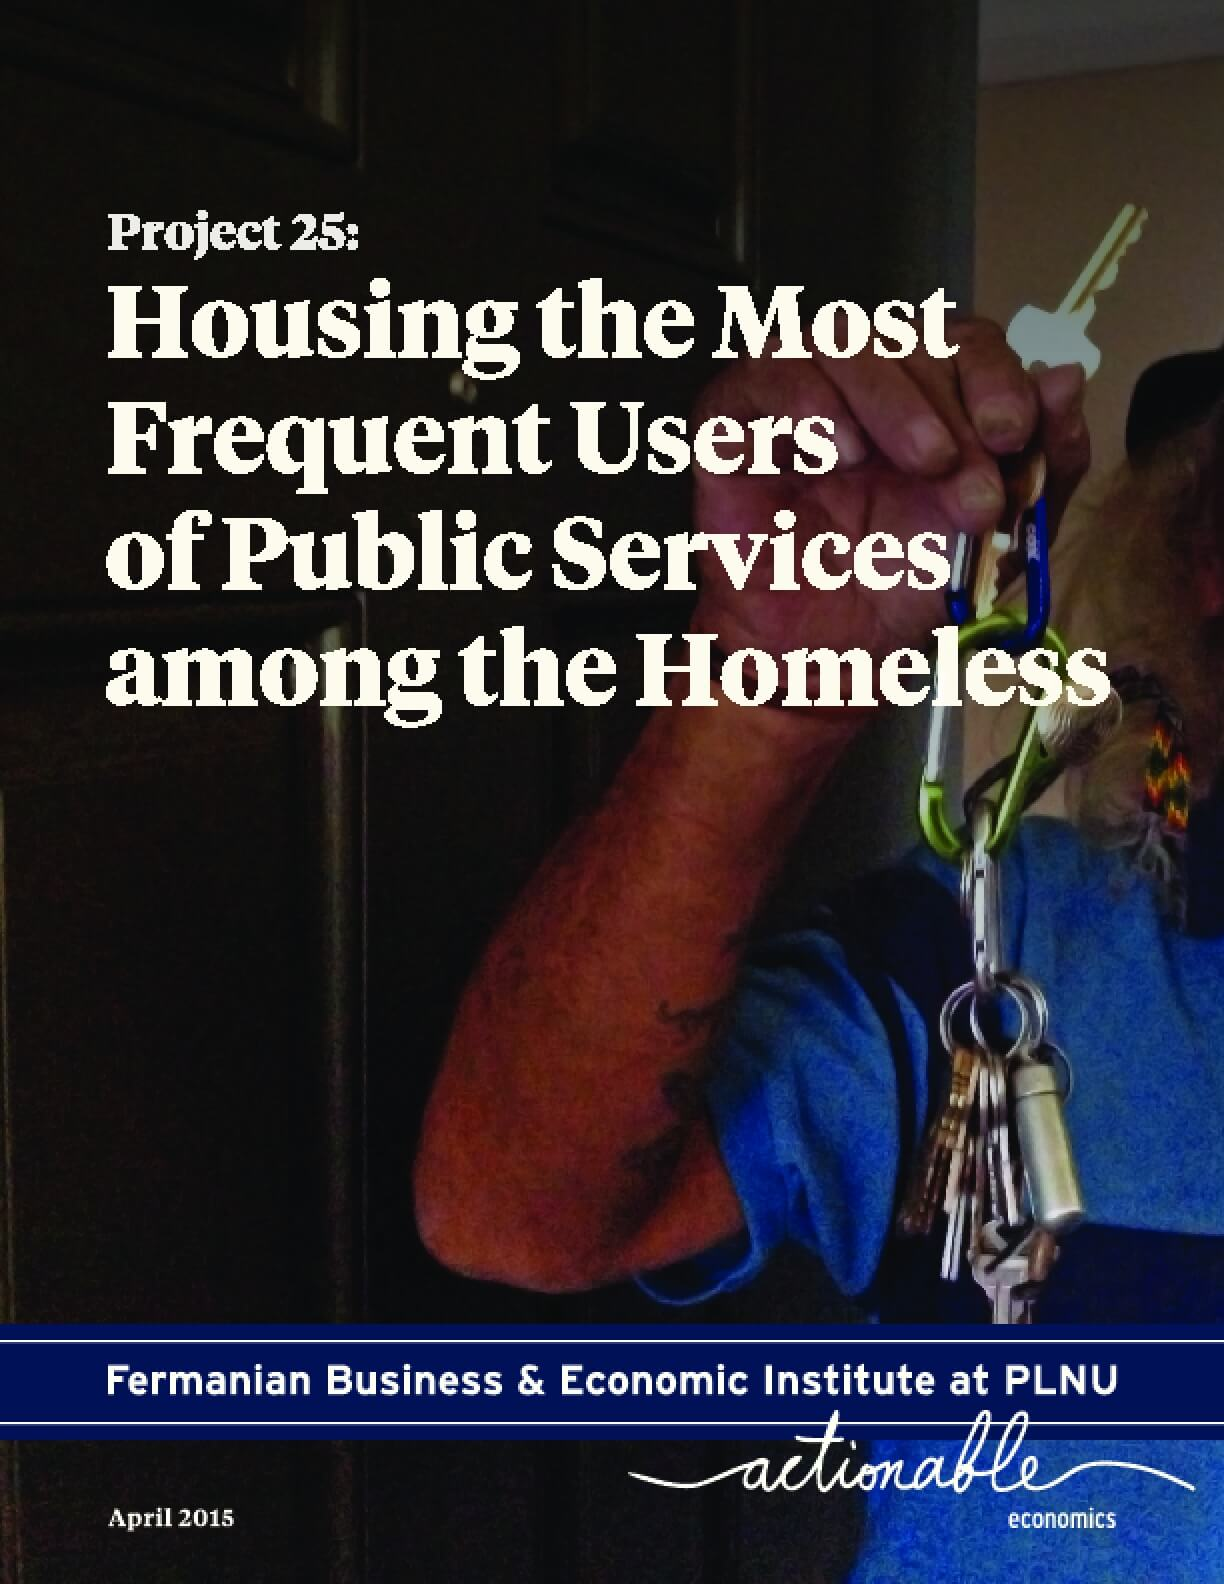 Project 25: Housing the Most Frequent Users of Public Services Among the Homeless